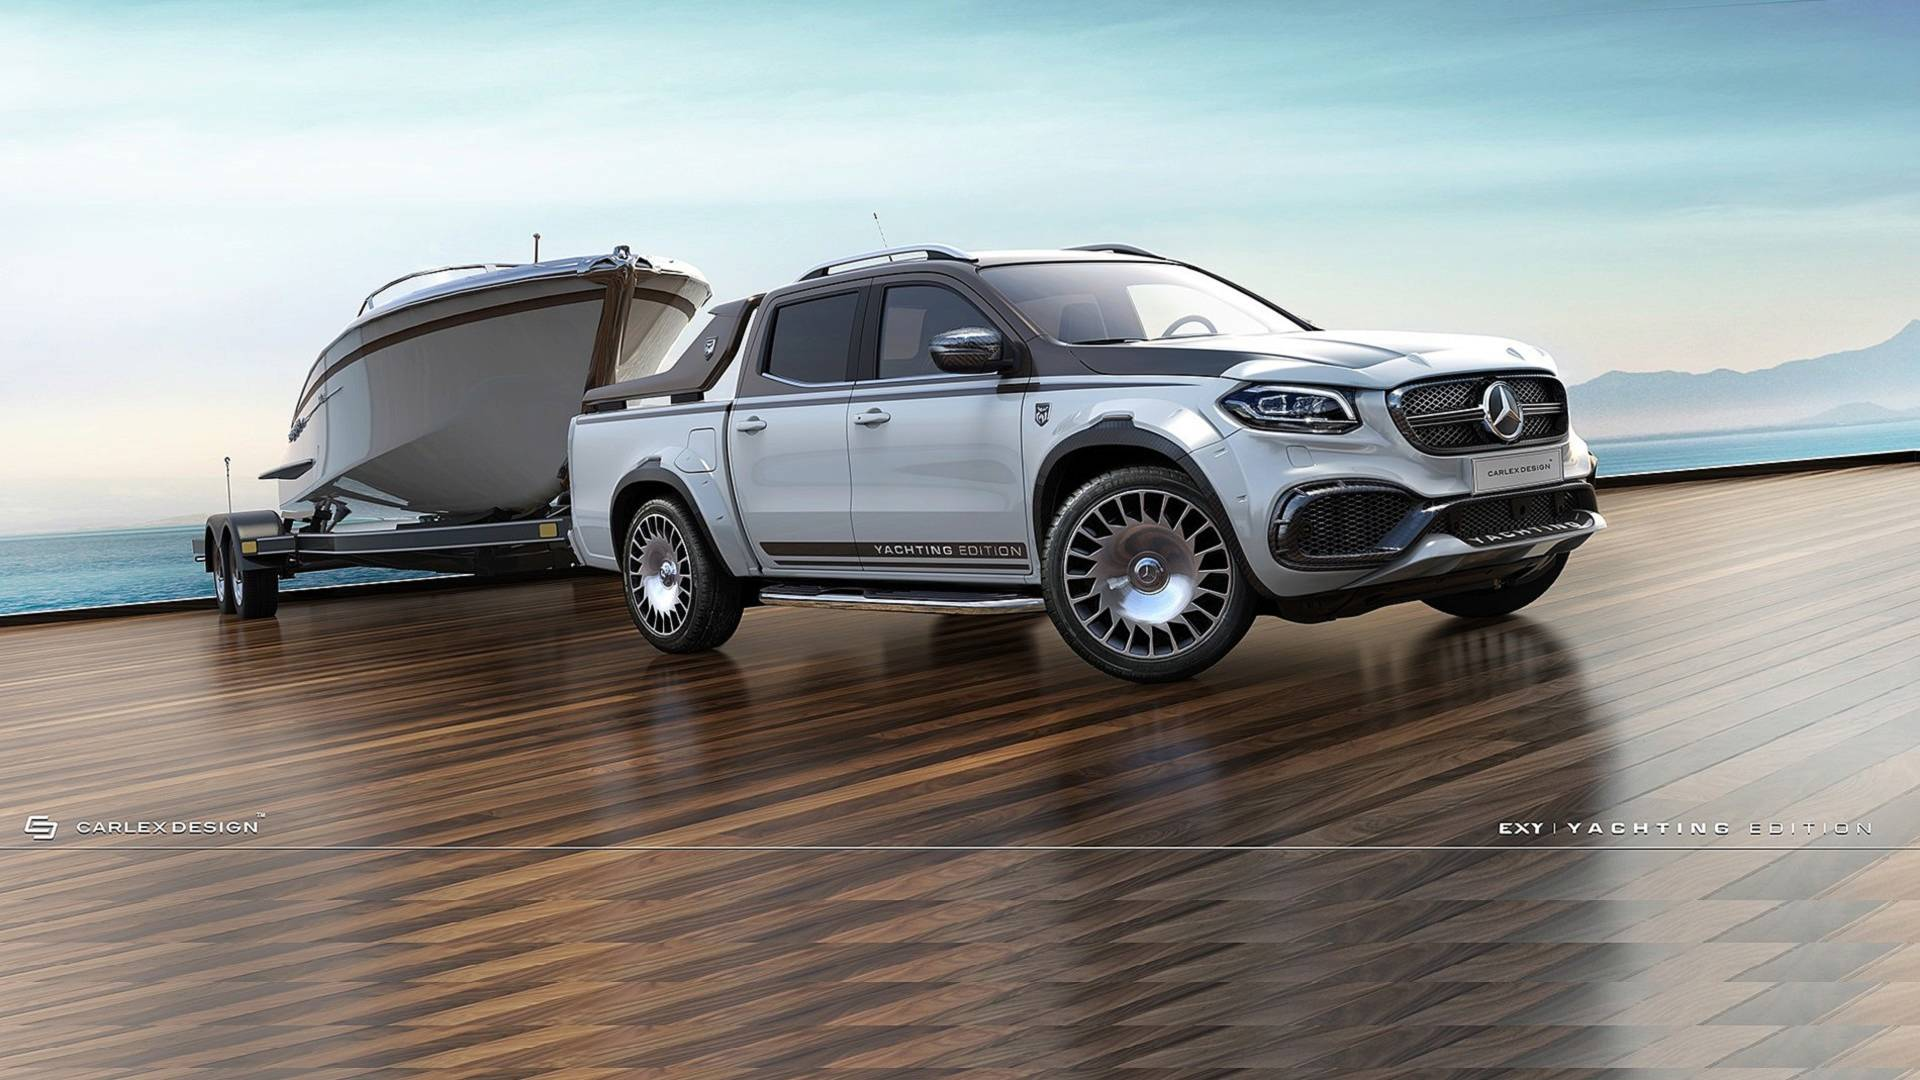 Carlex Design has revealed its take on the Mercedes-Benz X-Class pickup truck, complete with a magnificent all-carbon body kit and certain body parts borrowed from the Maybach S650